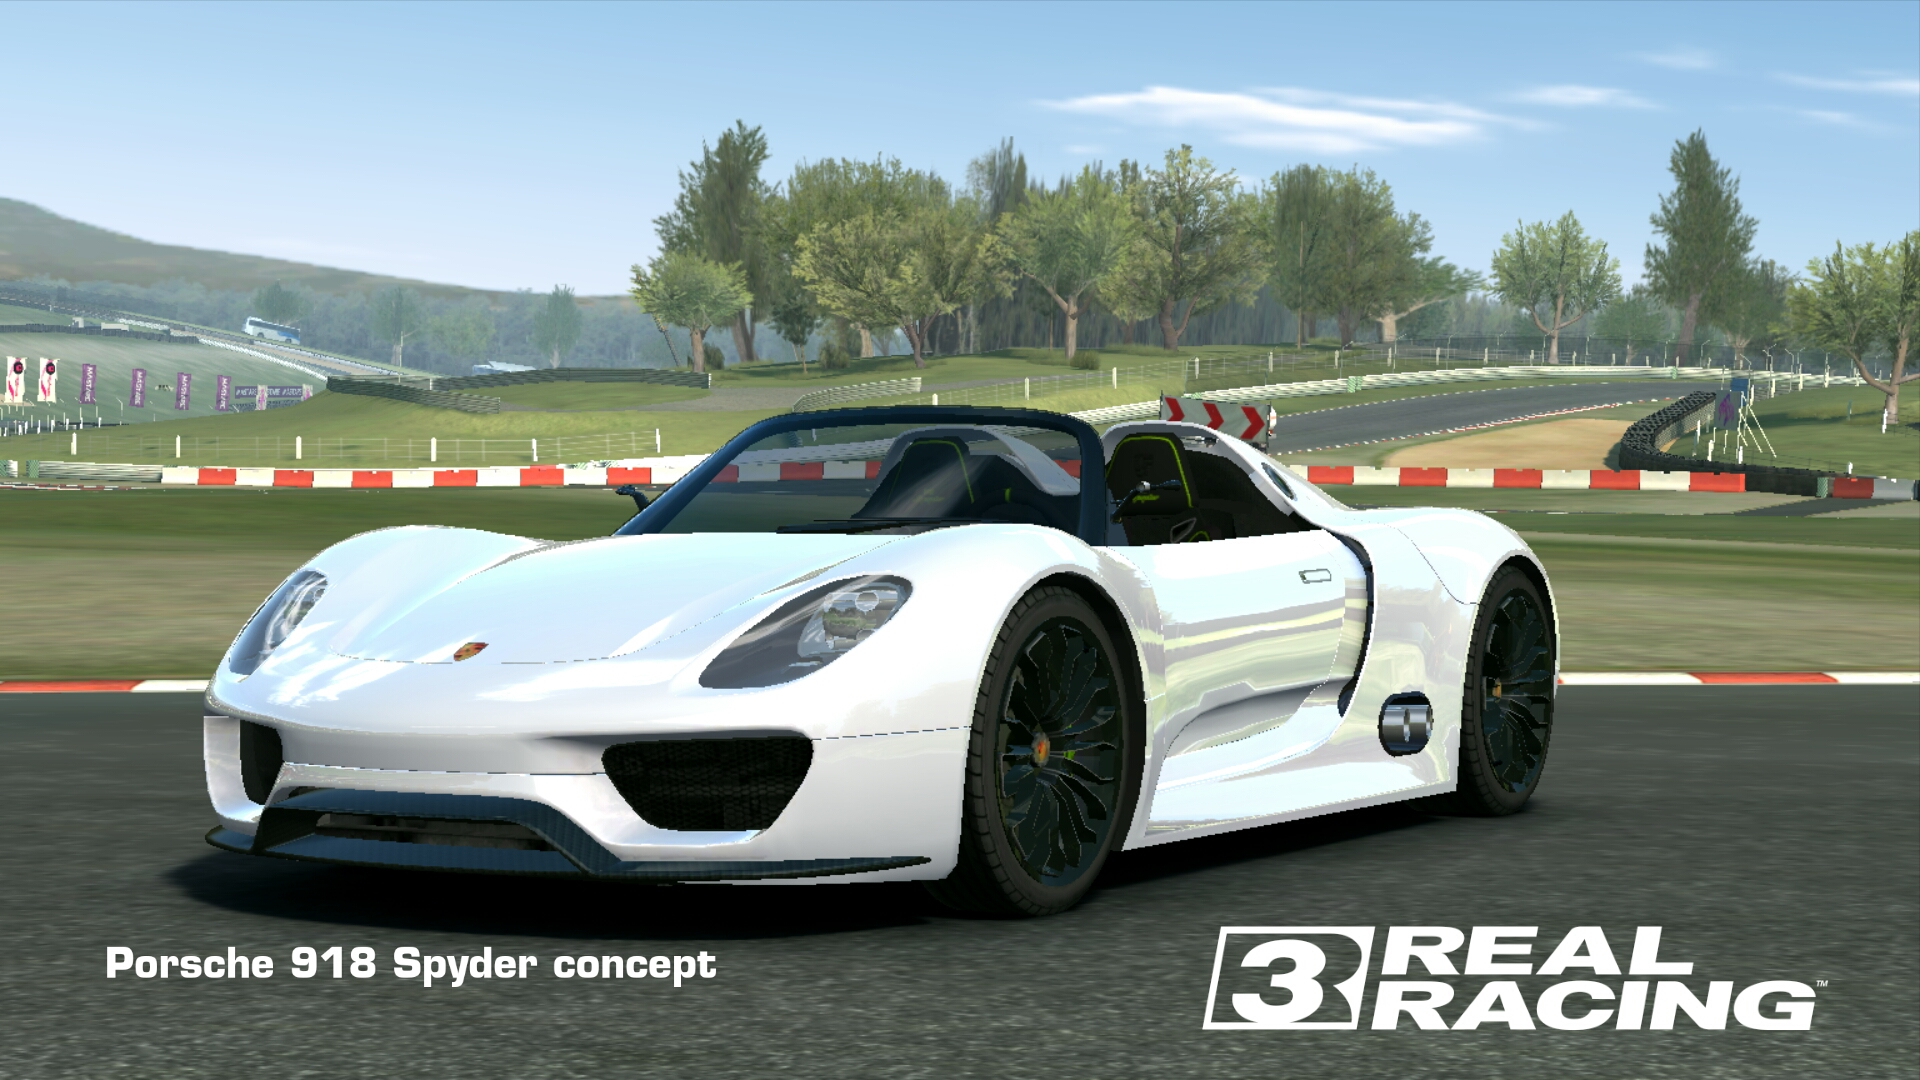 latest?cb=20150511014743&path-prefix=ru Fabulous How Much Does the Porsche 918 Spyder Concept Cost In Real Racing 3 Cars Trend